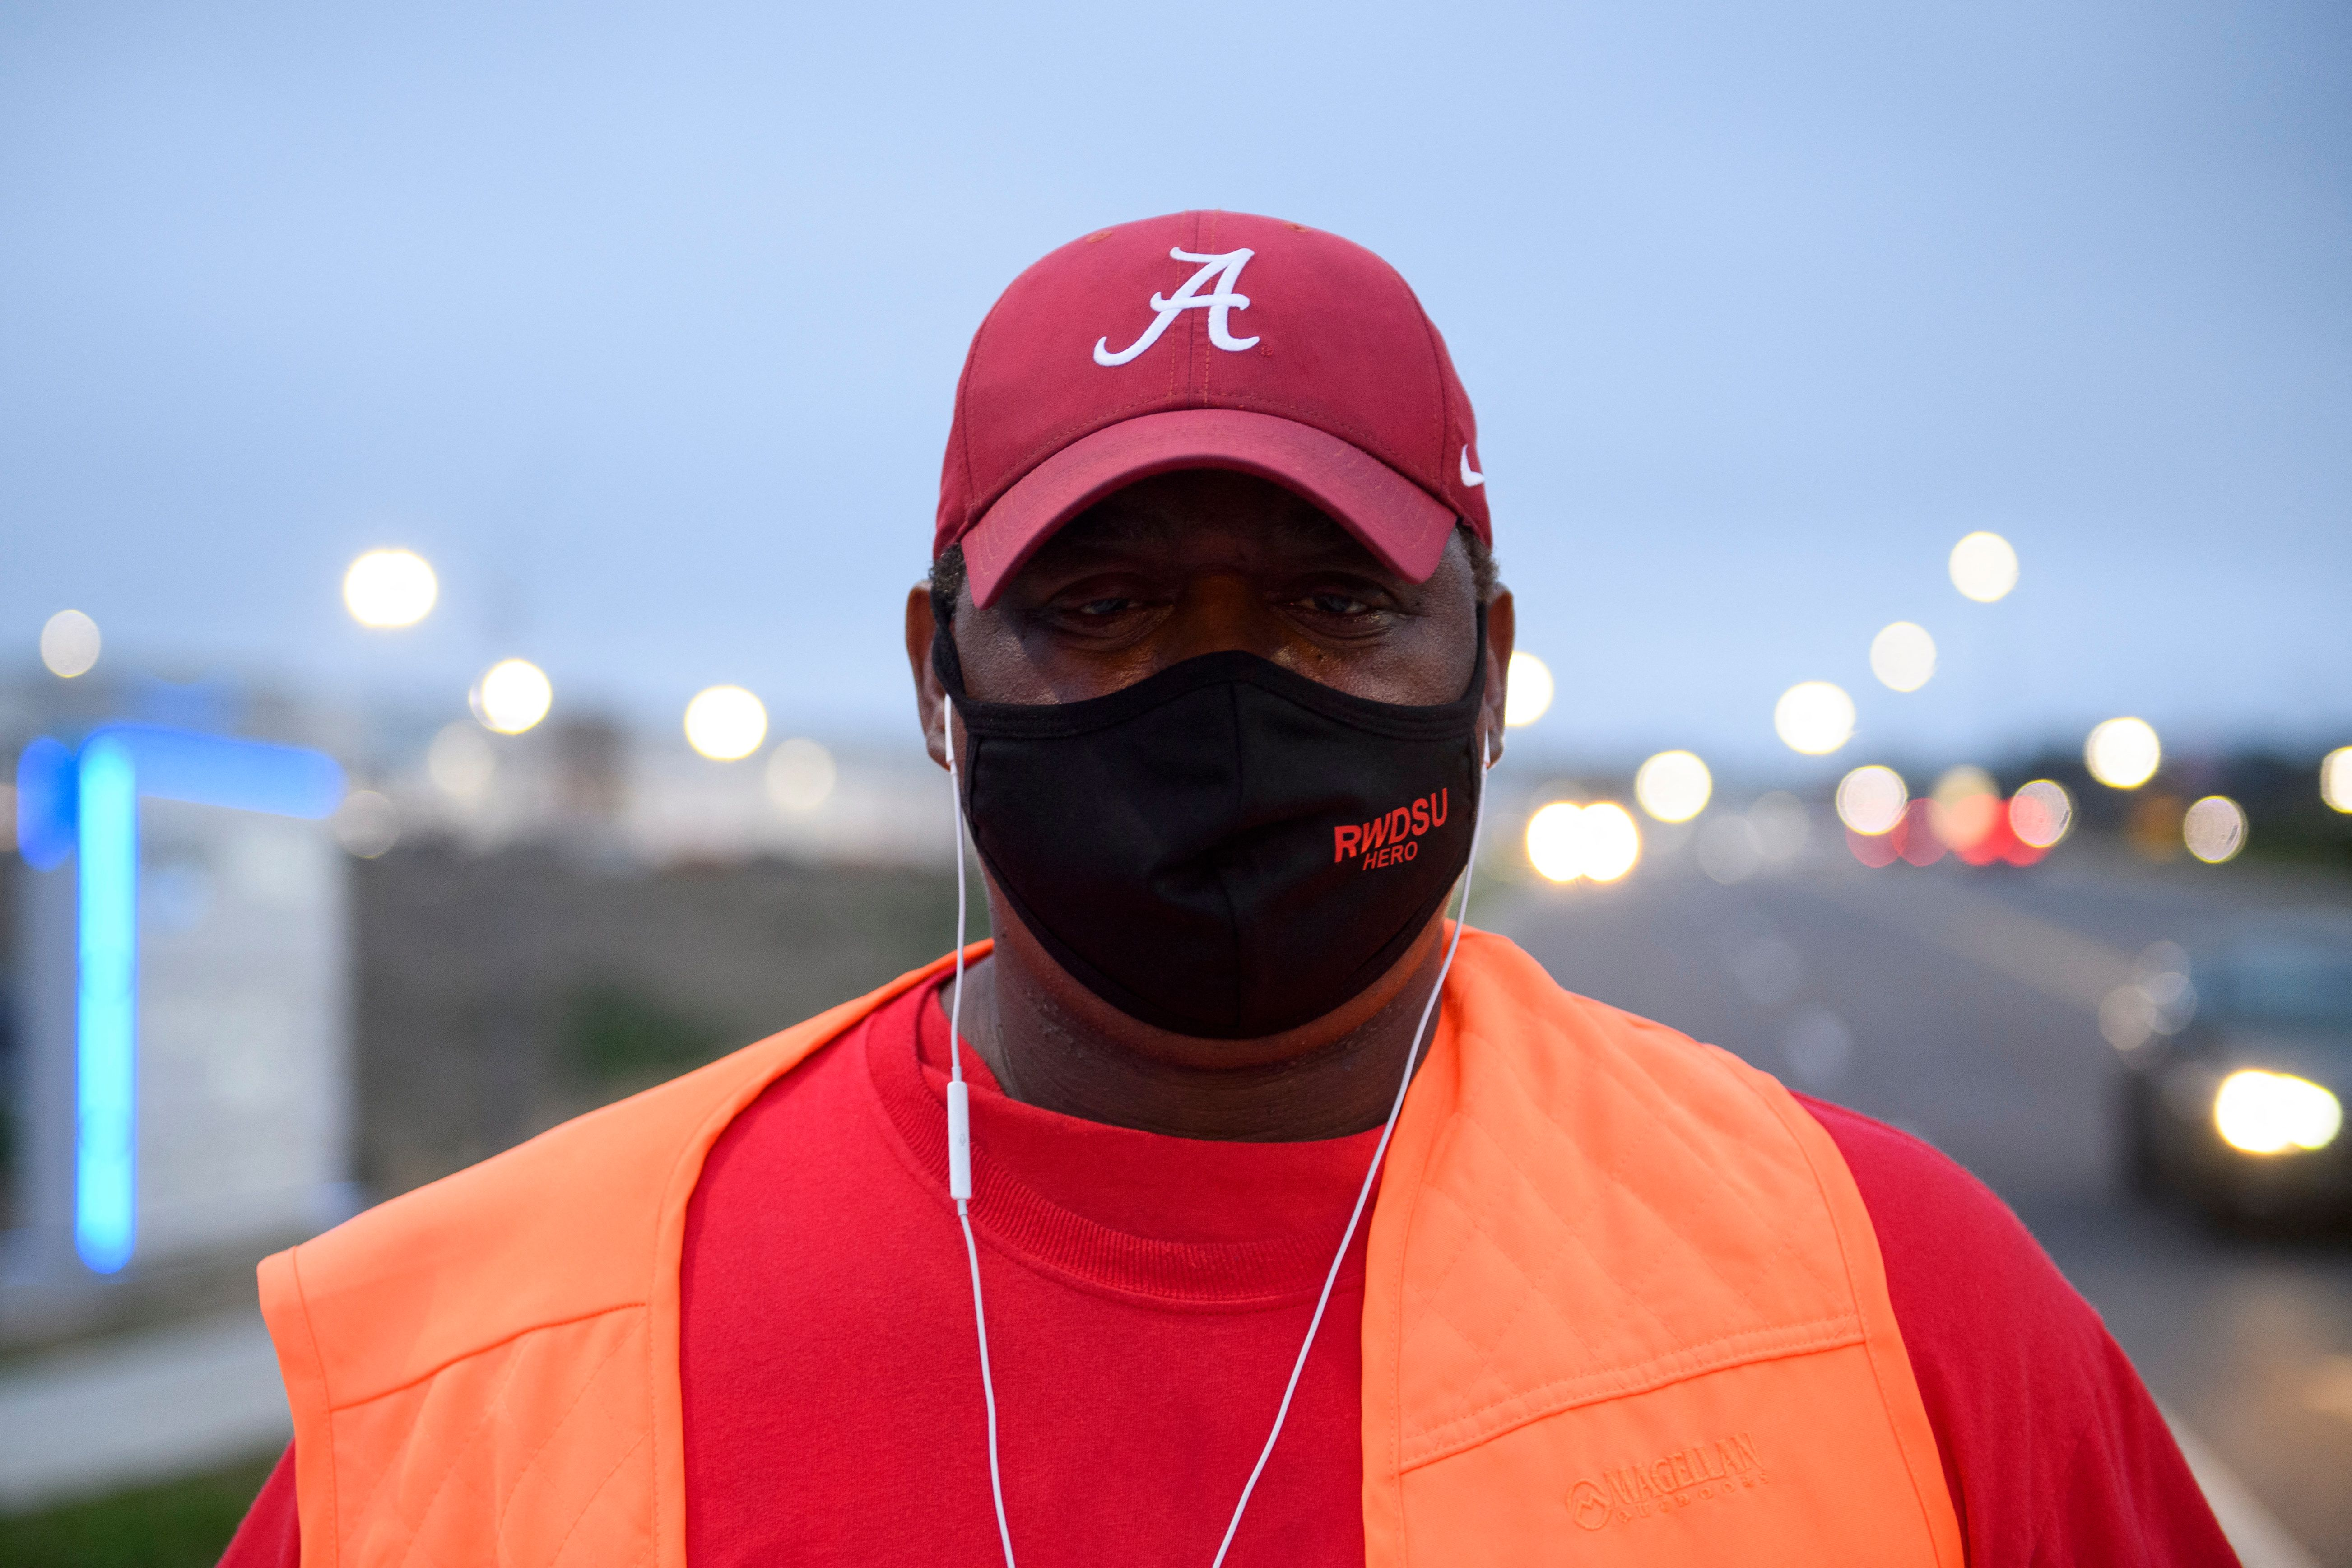 A union organizer named Steve stands outside of the Amazon fulfillment center in Bessemer, Alabama.